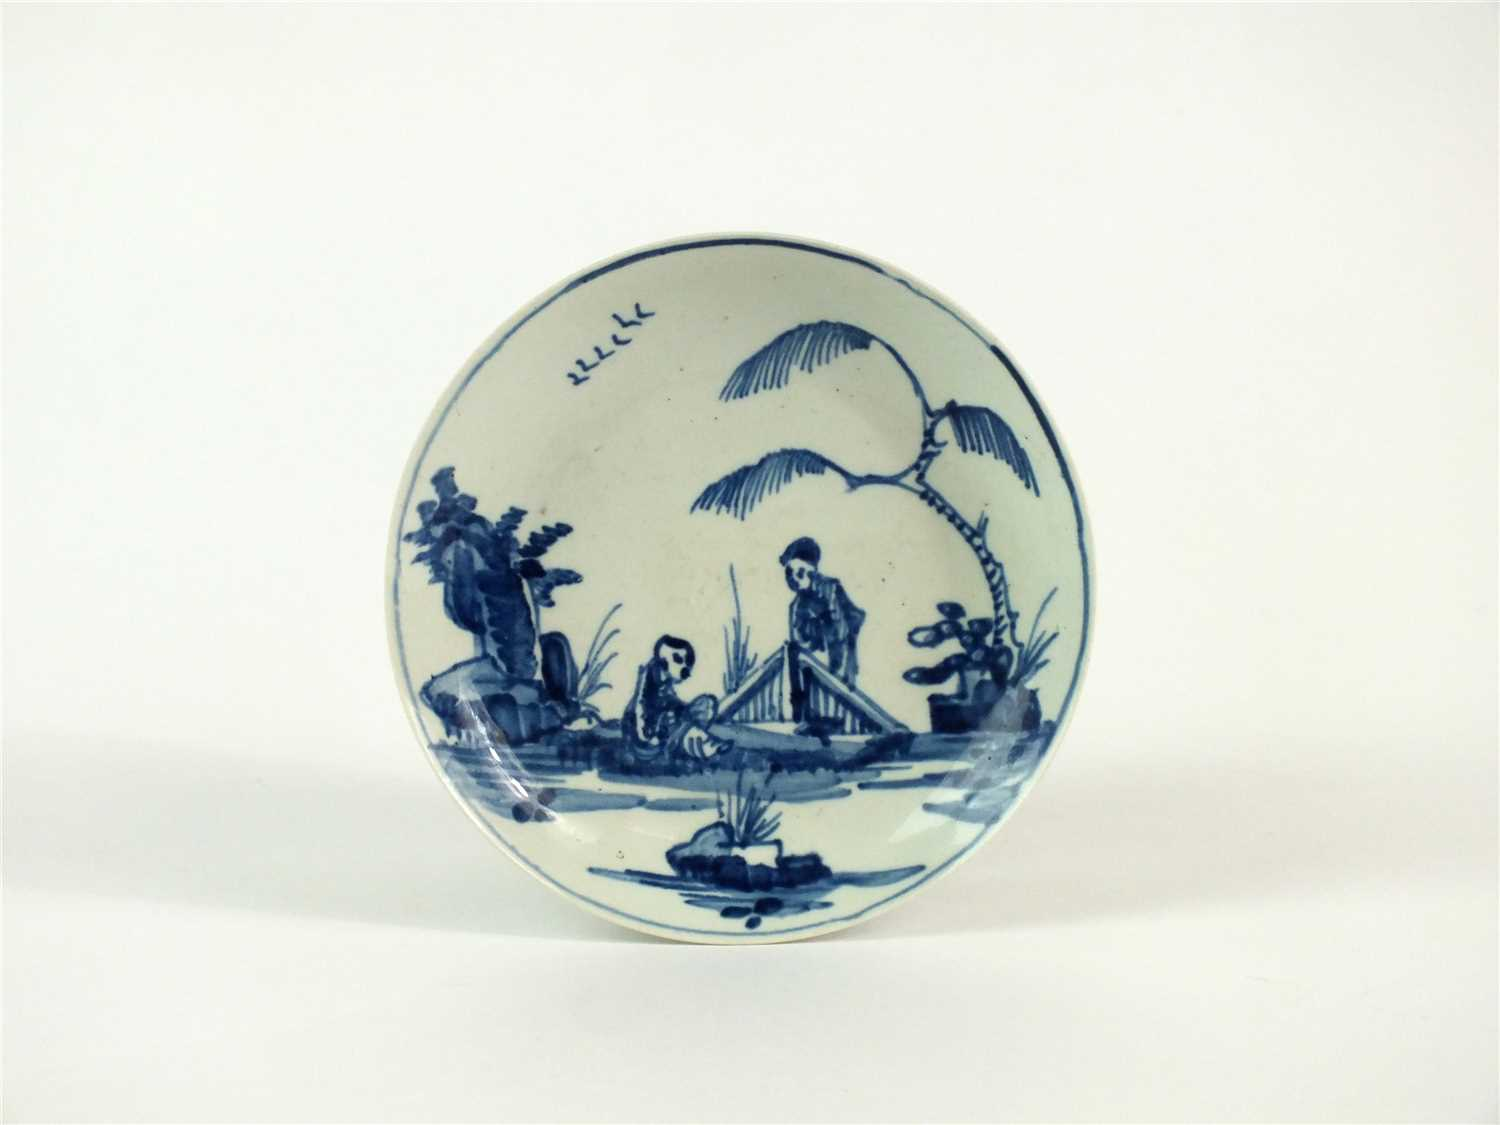 Lot 50 - A Vauxhall porcelain blue and white saucer